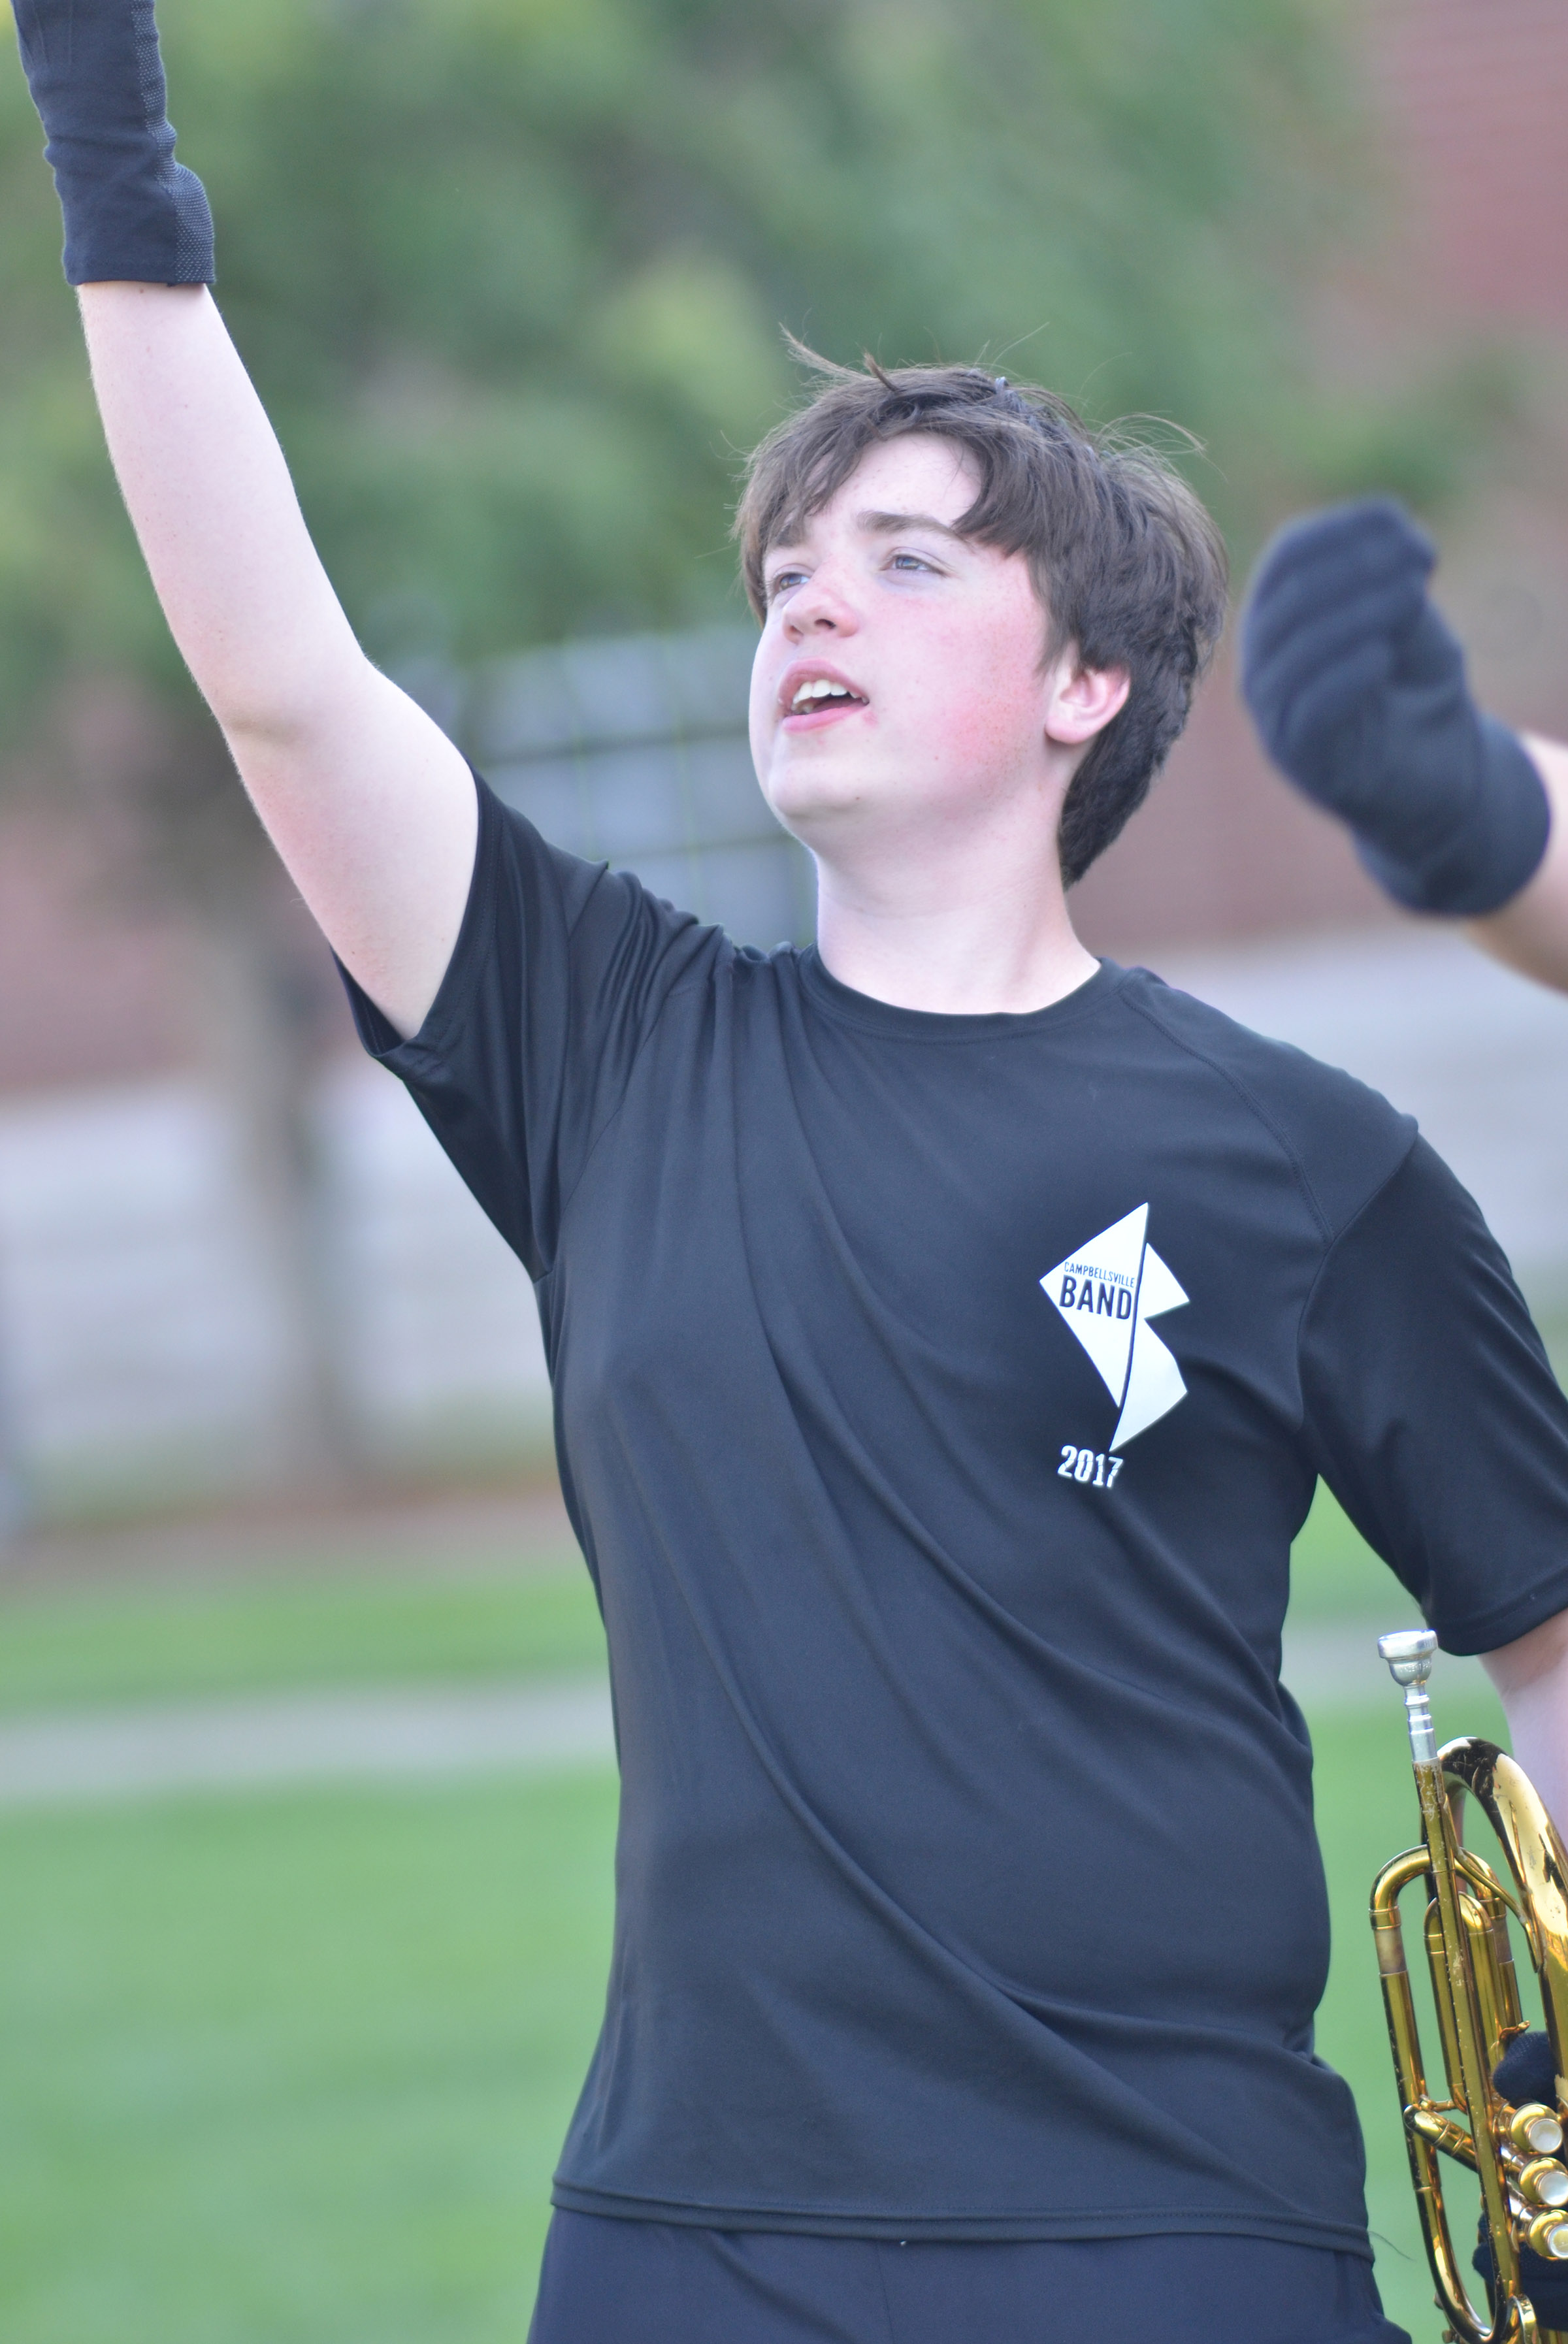 CHS sophomore Grant Rinehart performs during warmup.